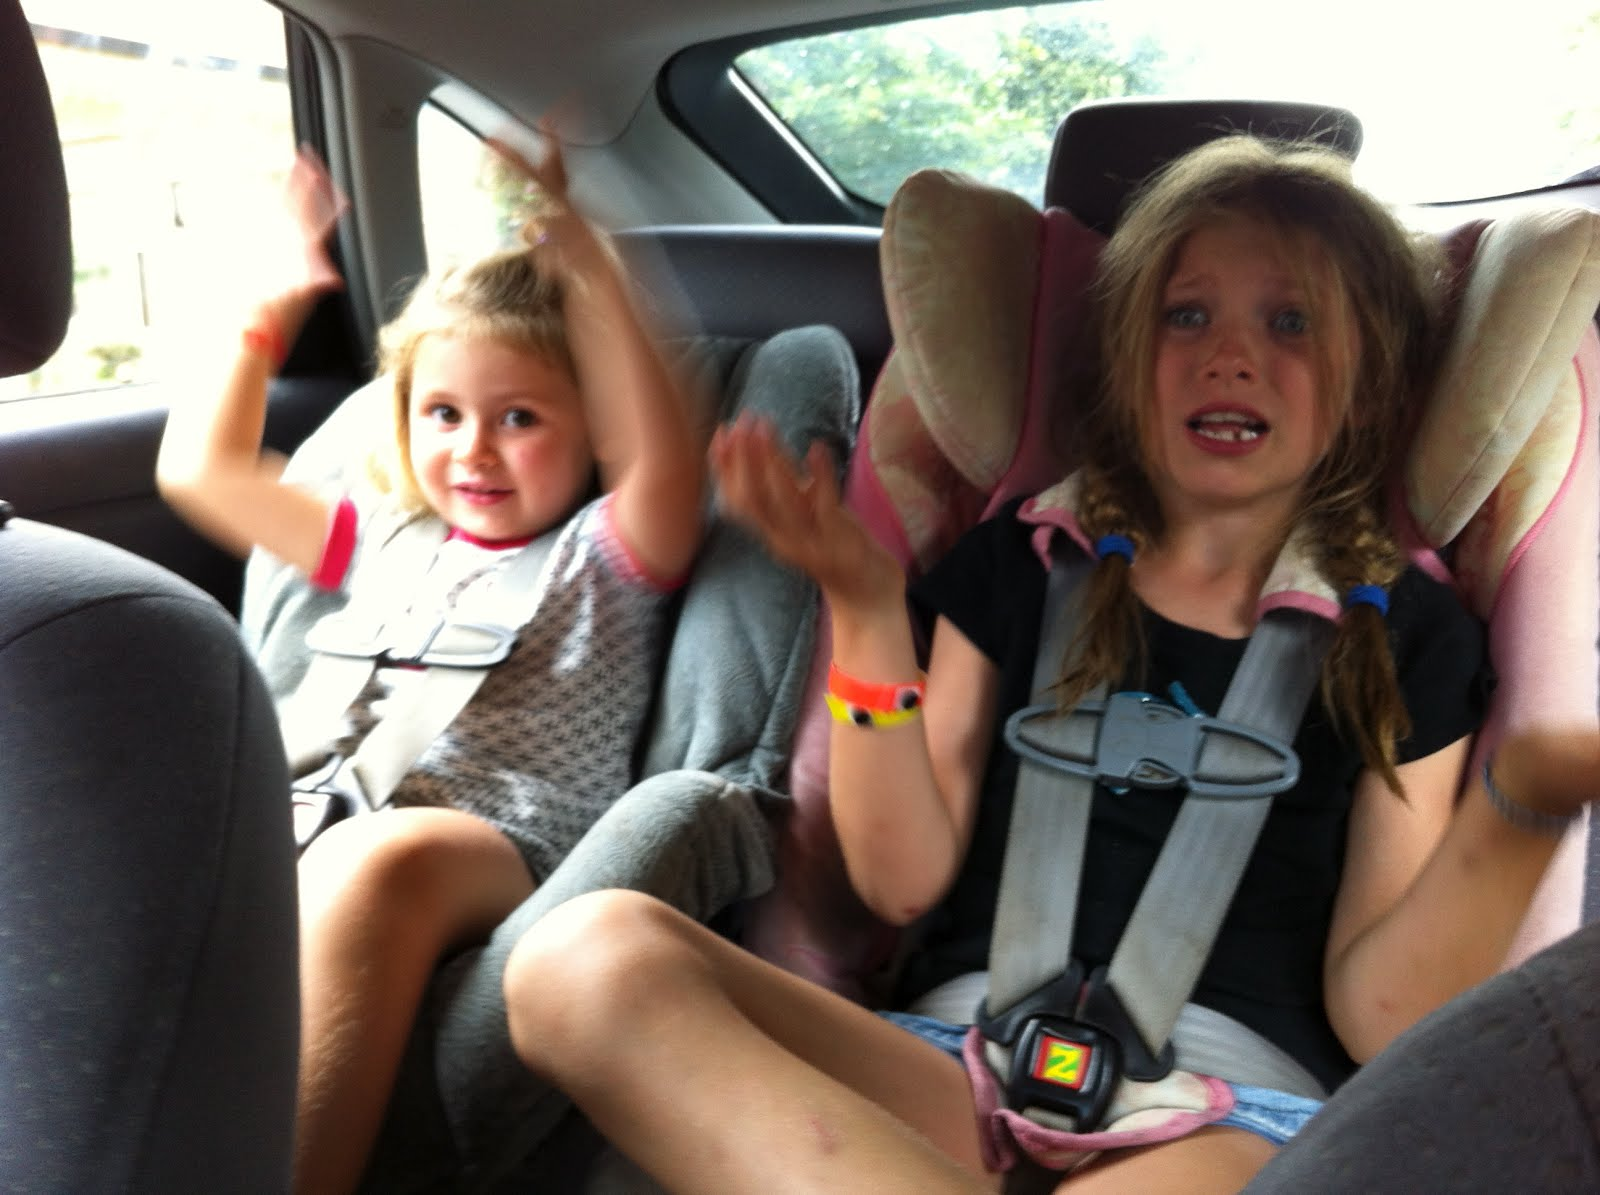 No Dashiki Required: Car Seat Dancing